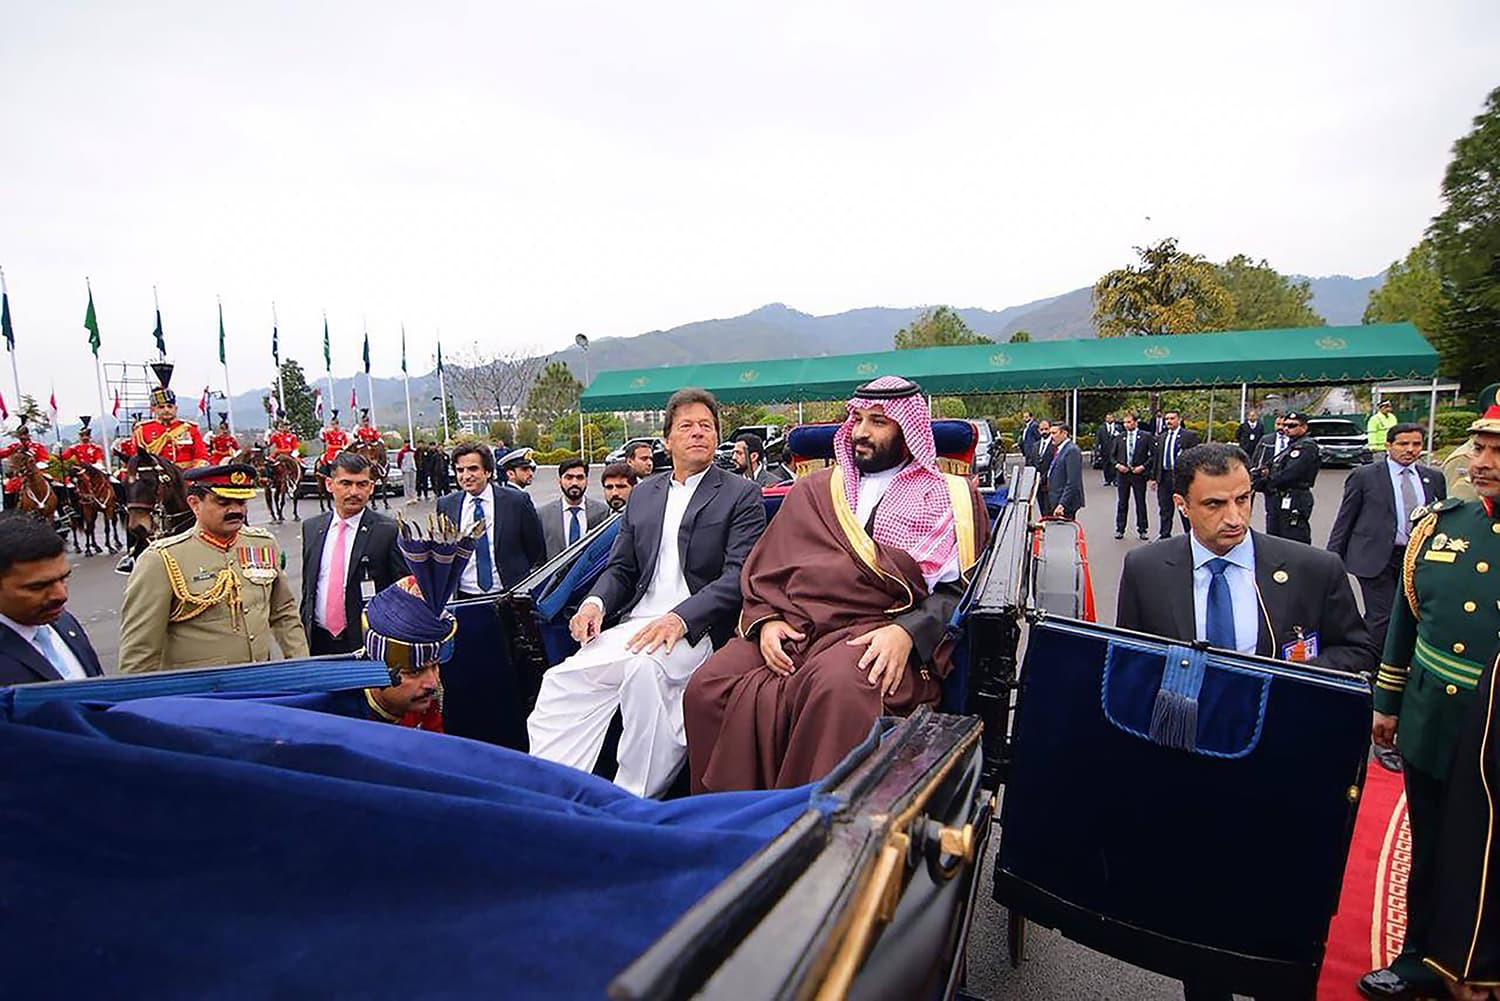 The Saudi crown prince and Prime Minister Imran Khan arrived at the President House in a traditional chariot.— AFP